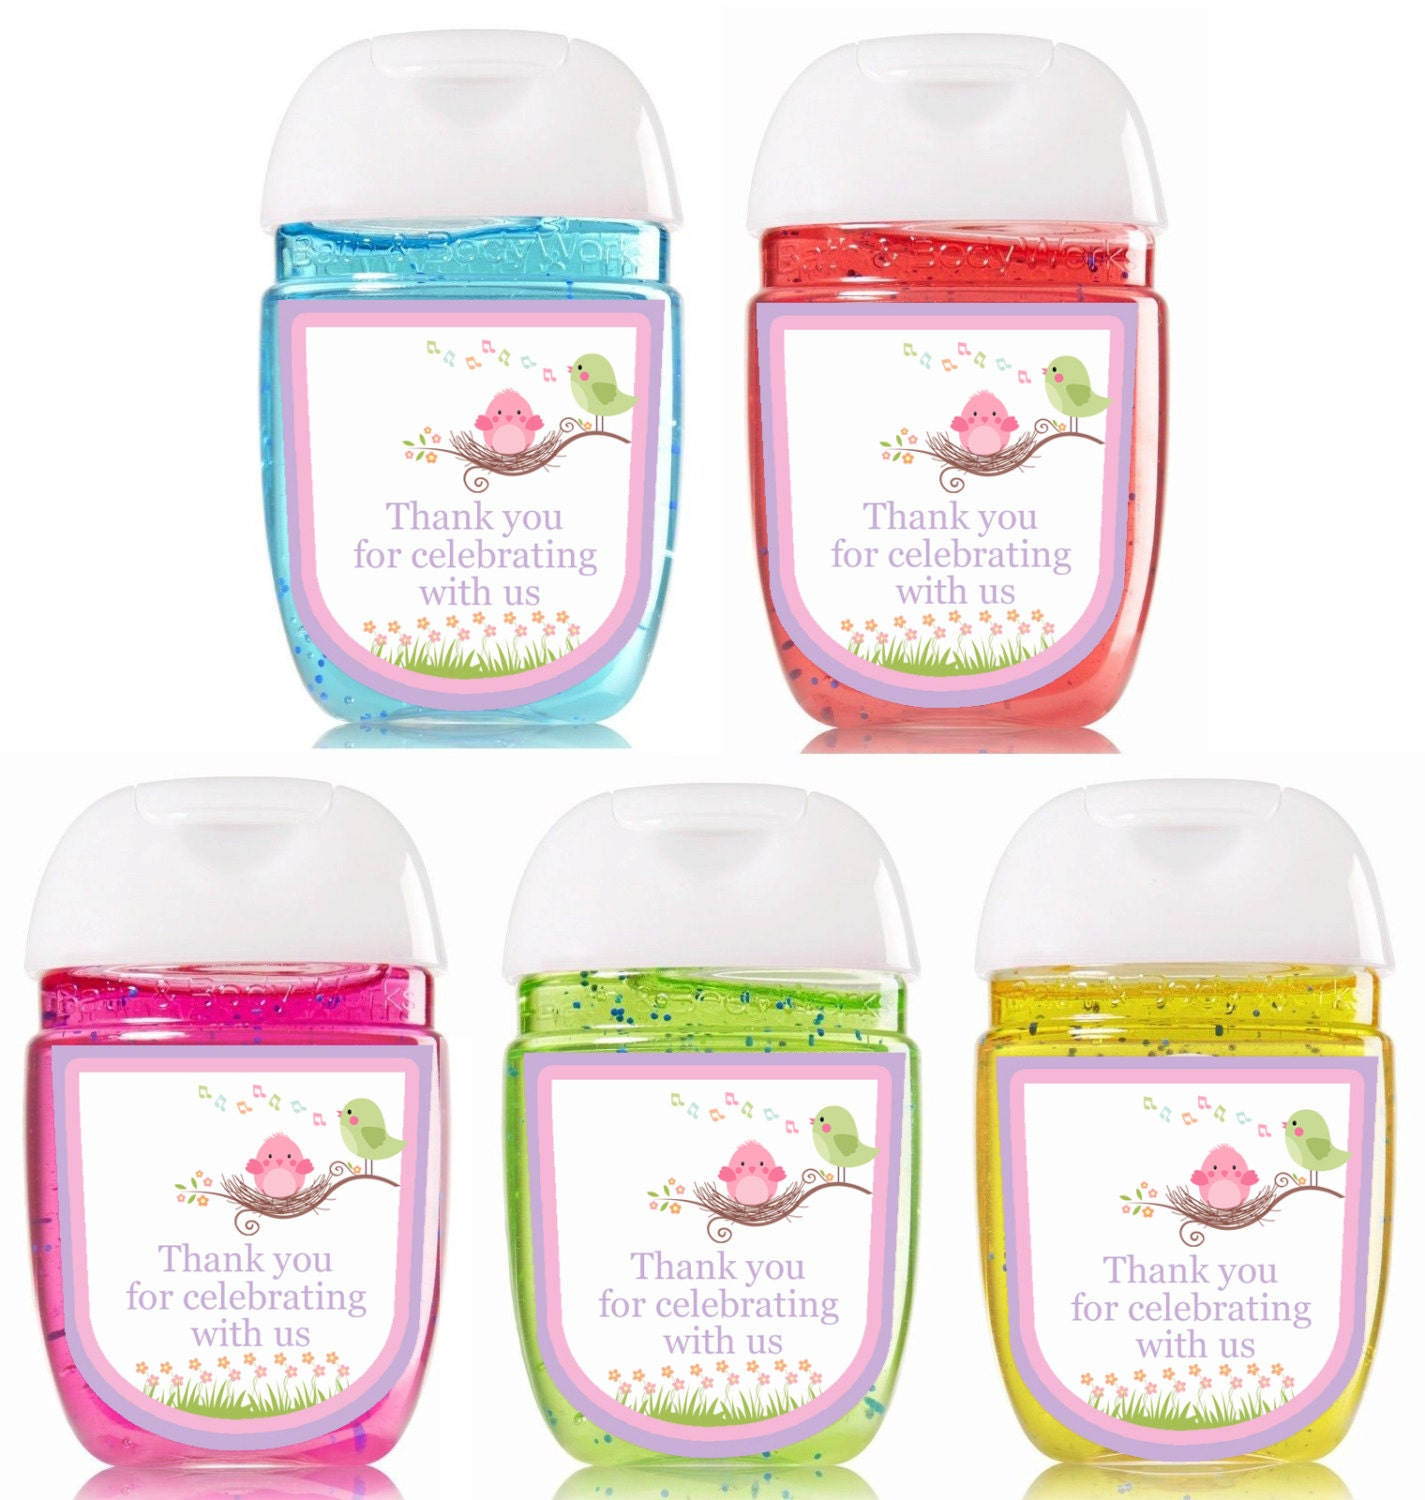 New Bath and Body Works Hand Sanitizer / Baby Shower Favors